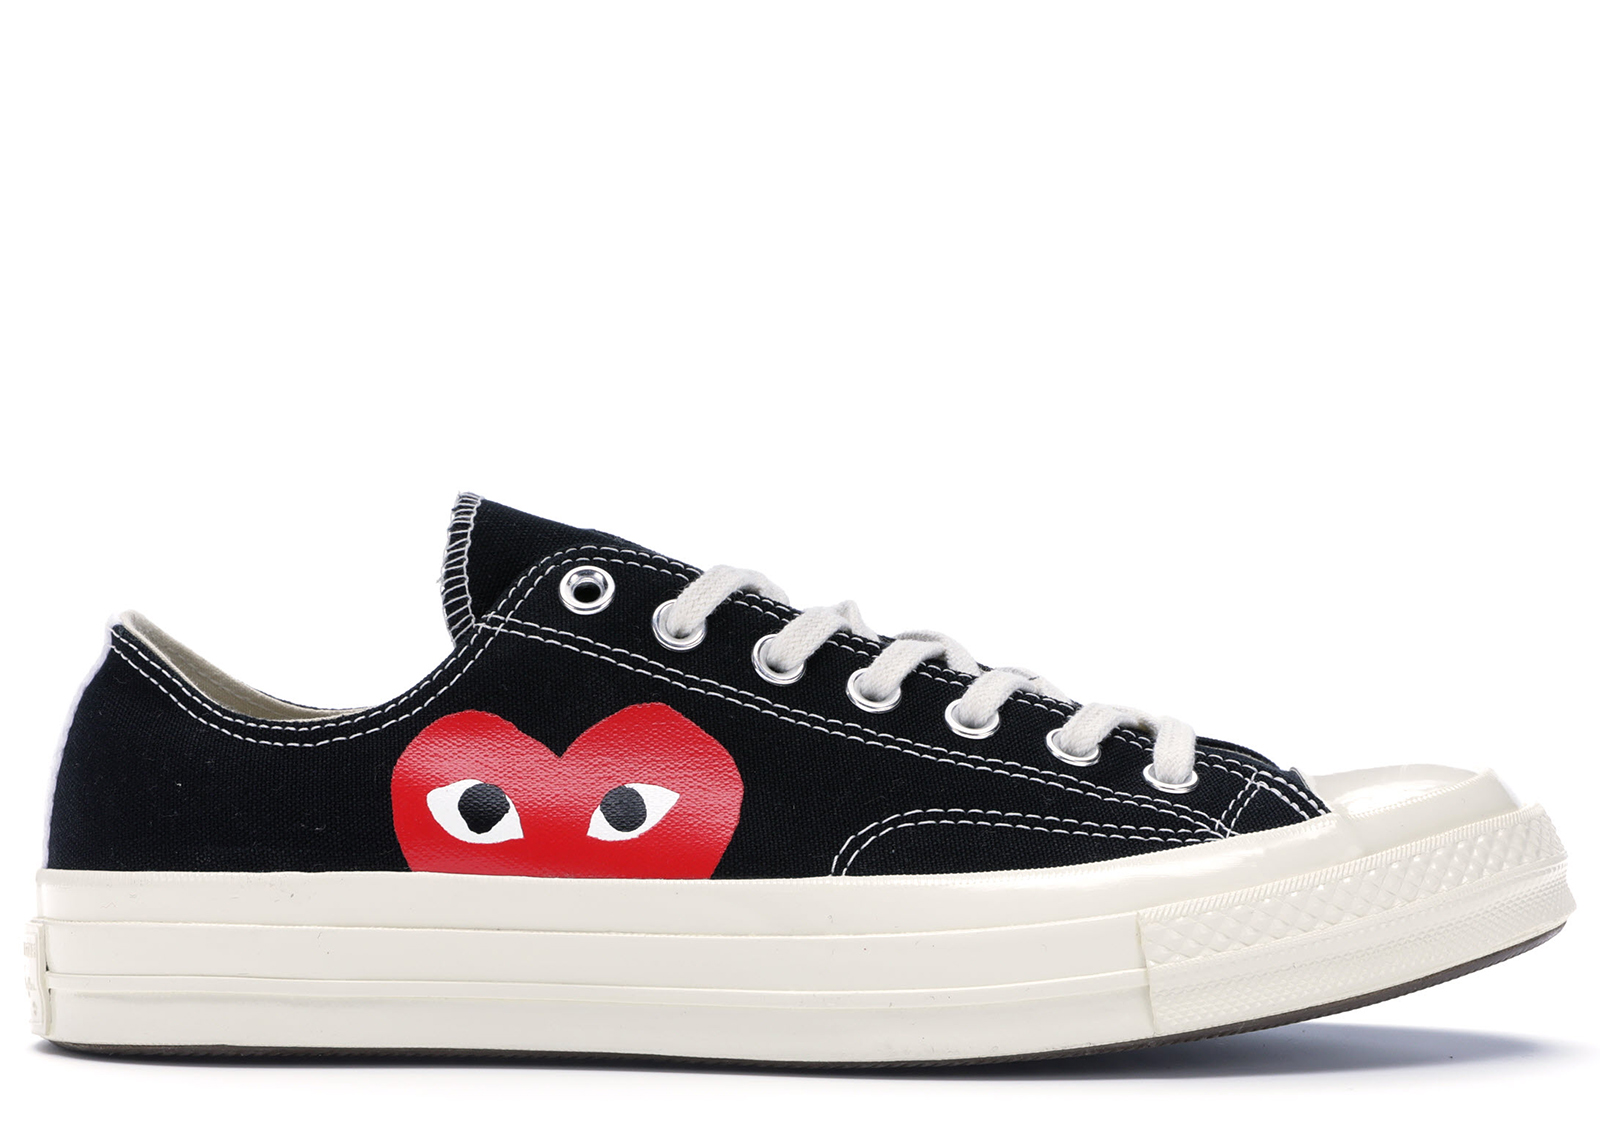 Converse Chuck Taylor All Star 70s Ox Comme des Garcons PLAY Black